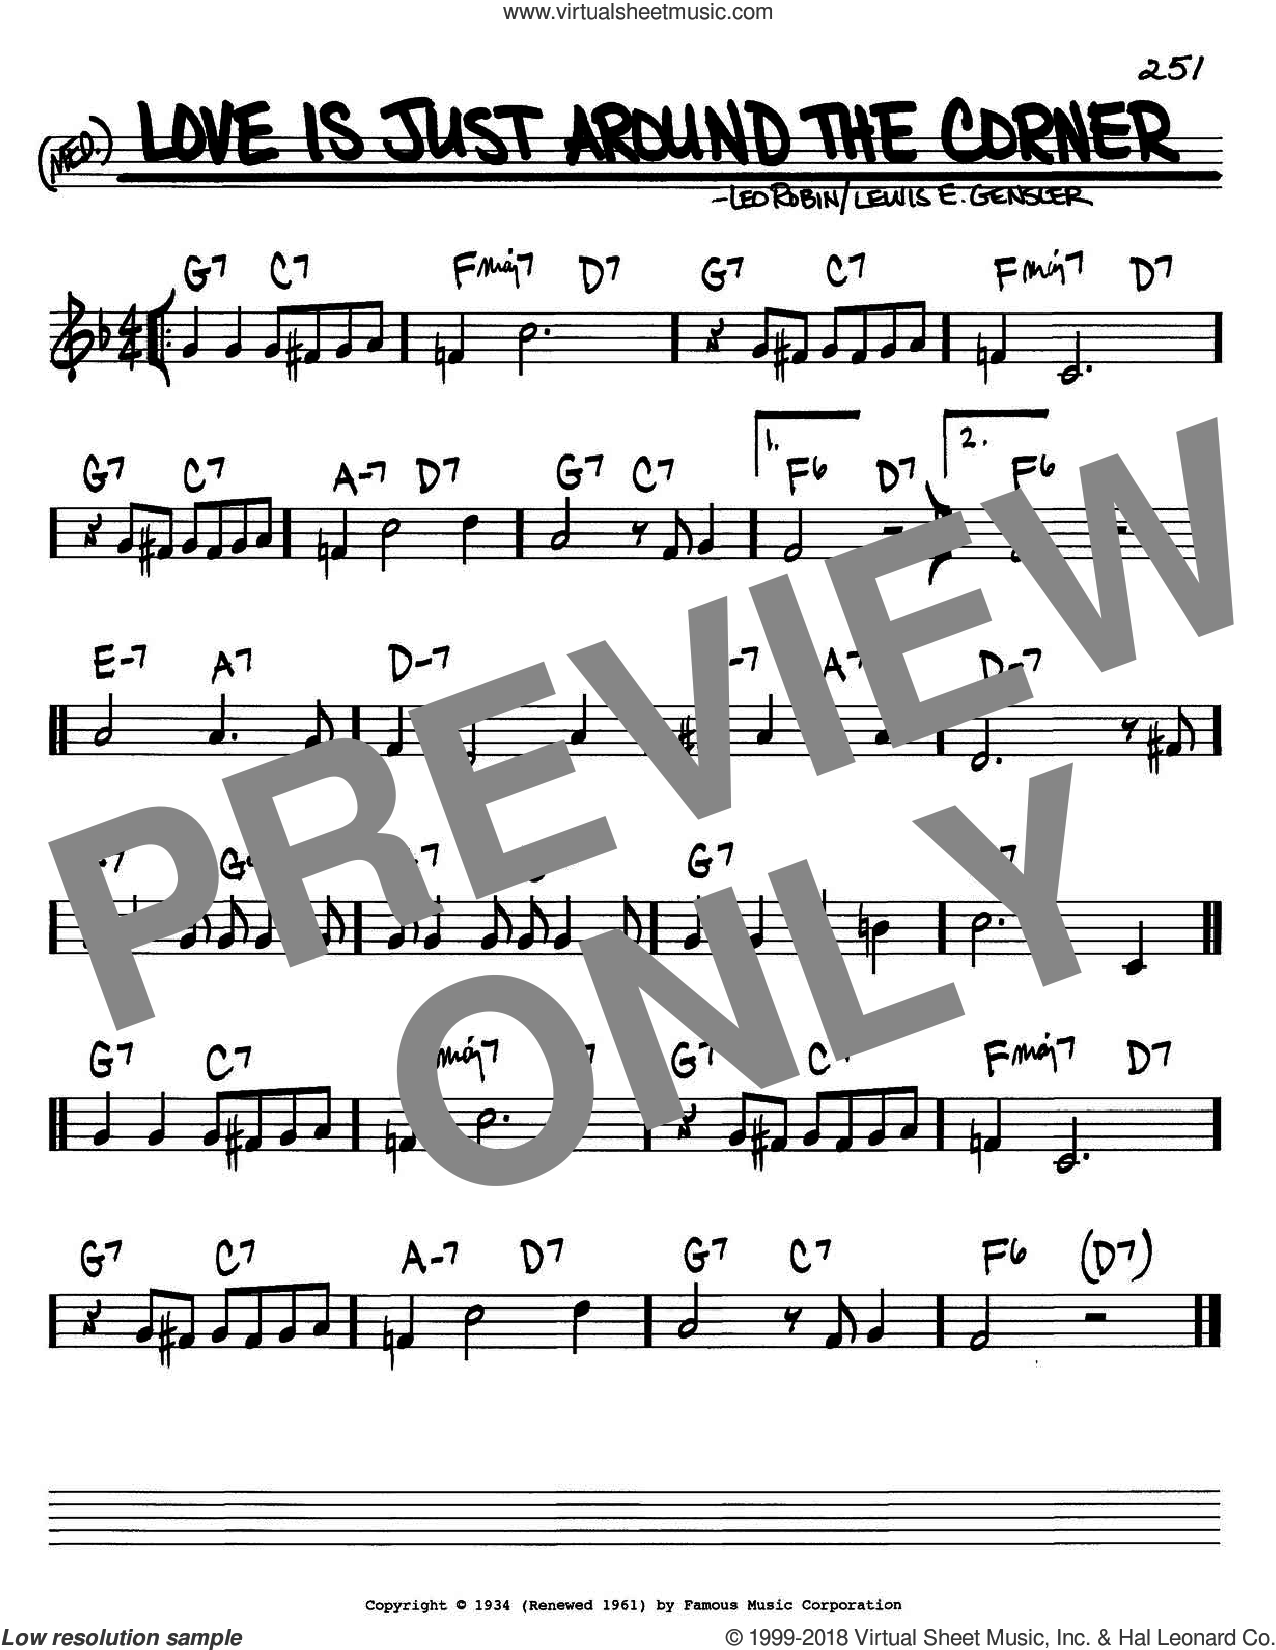 Love Is Just Around The Corner sheet music for voice and other instruments (C) by Lewis E. Gensler, Bing Crosby and Leo Robin. Score Image Preview.